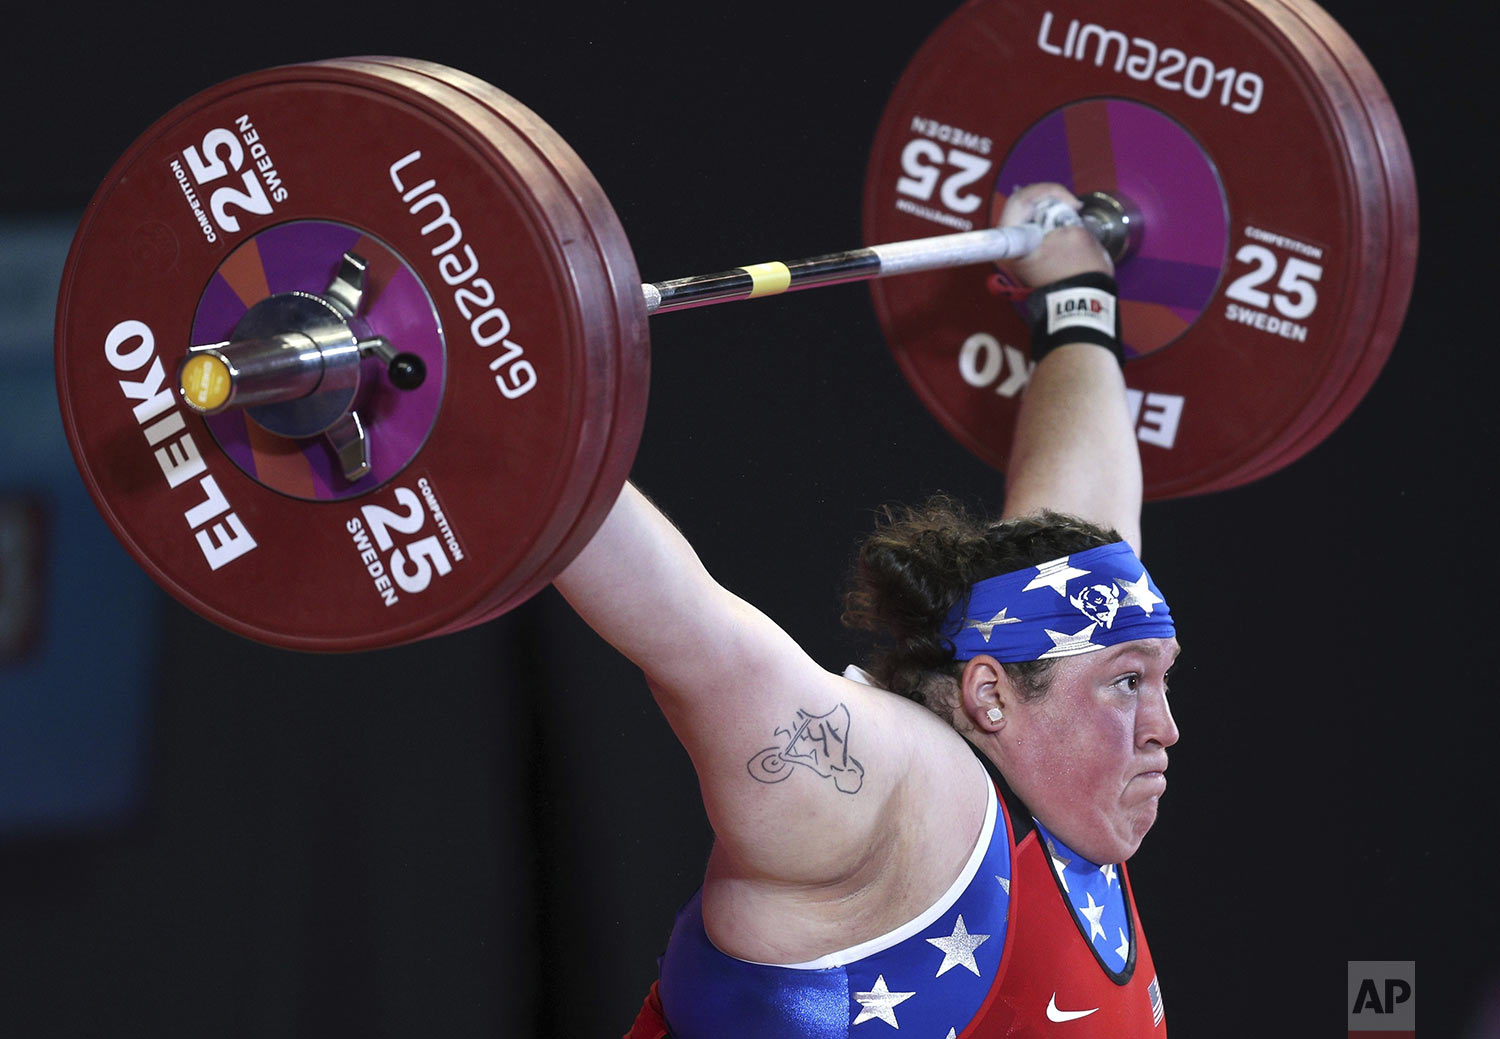 Sarah Robles of the United States competes in women's snatch +87 kg weightlifting at the Pan American Games in Lima, Peru, Tuesday, July 30, 2019. (AP Photo/Martin Mejia)